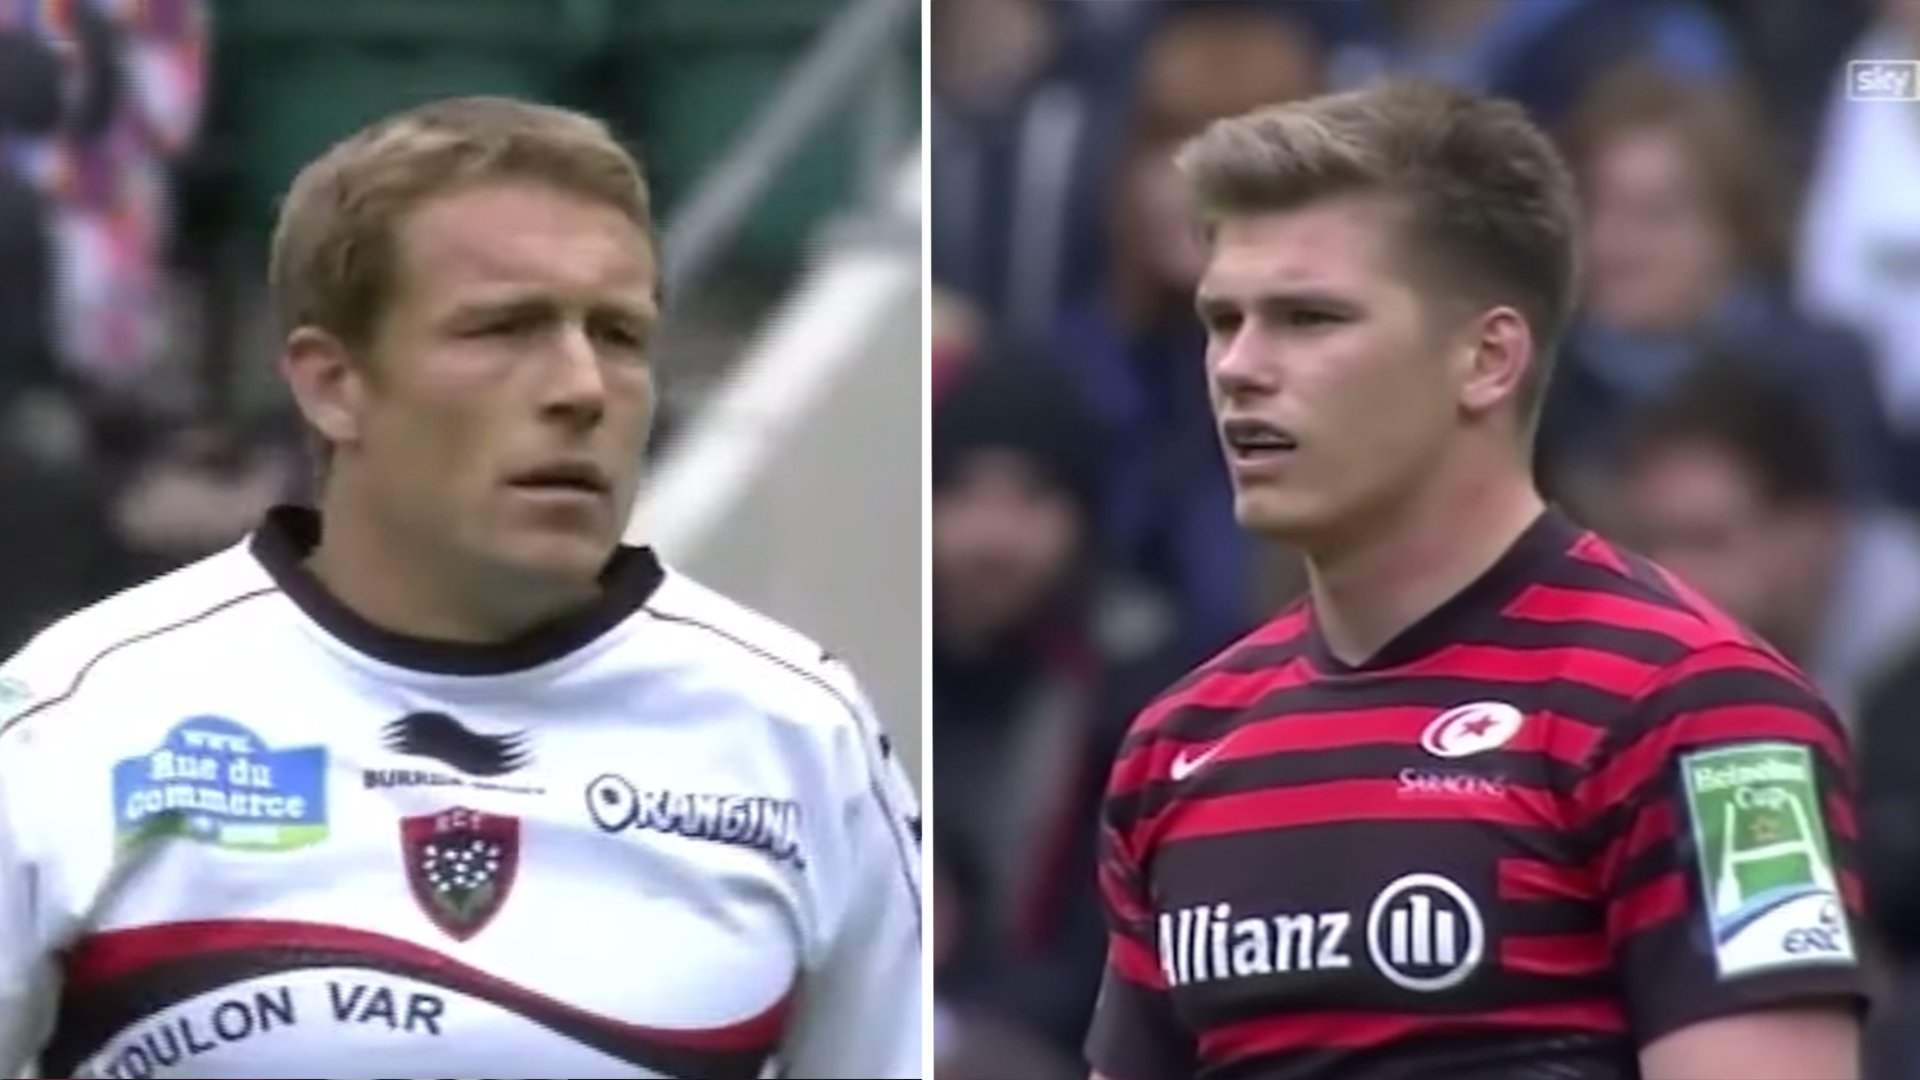 Toulon have just released full footage of the moment when Jonny Wilkinson put Farrell back in his place